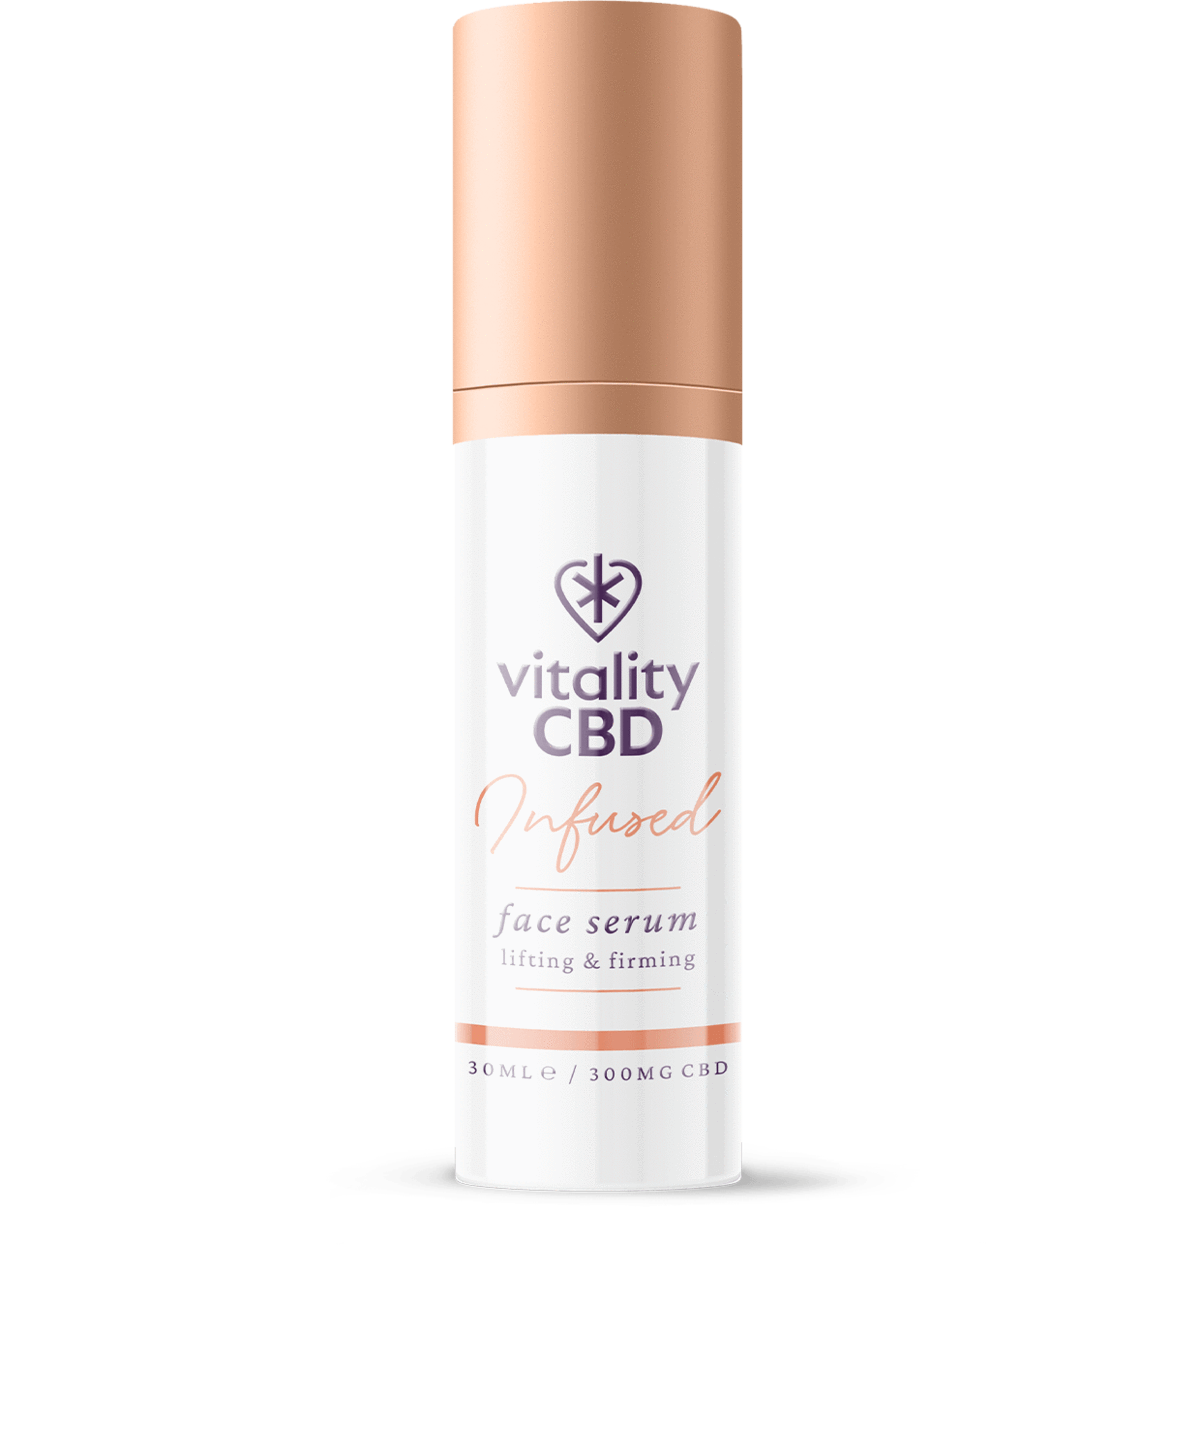 Vitality CBD Face Serum